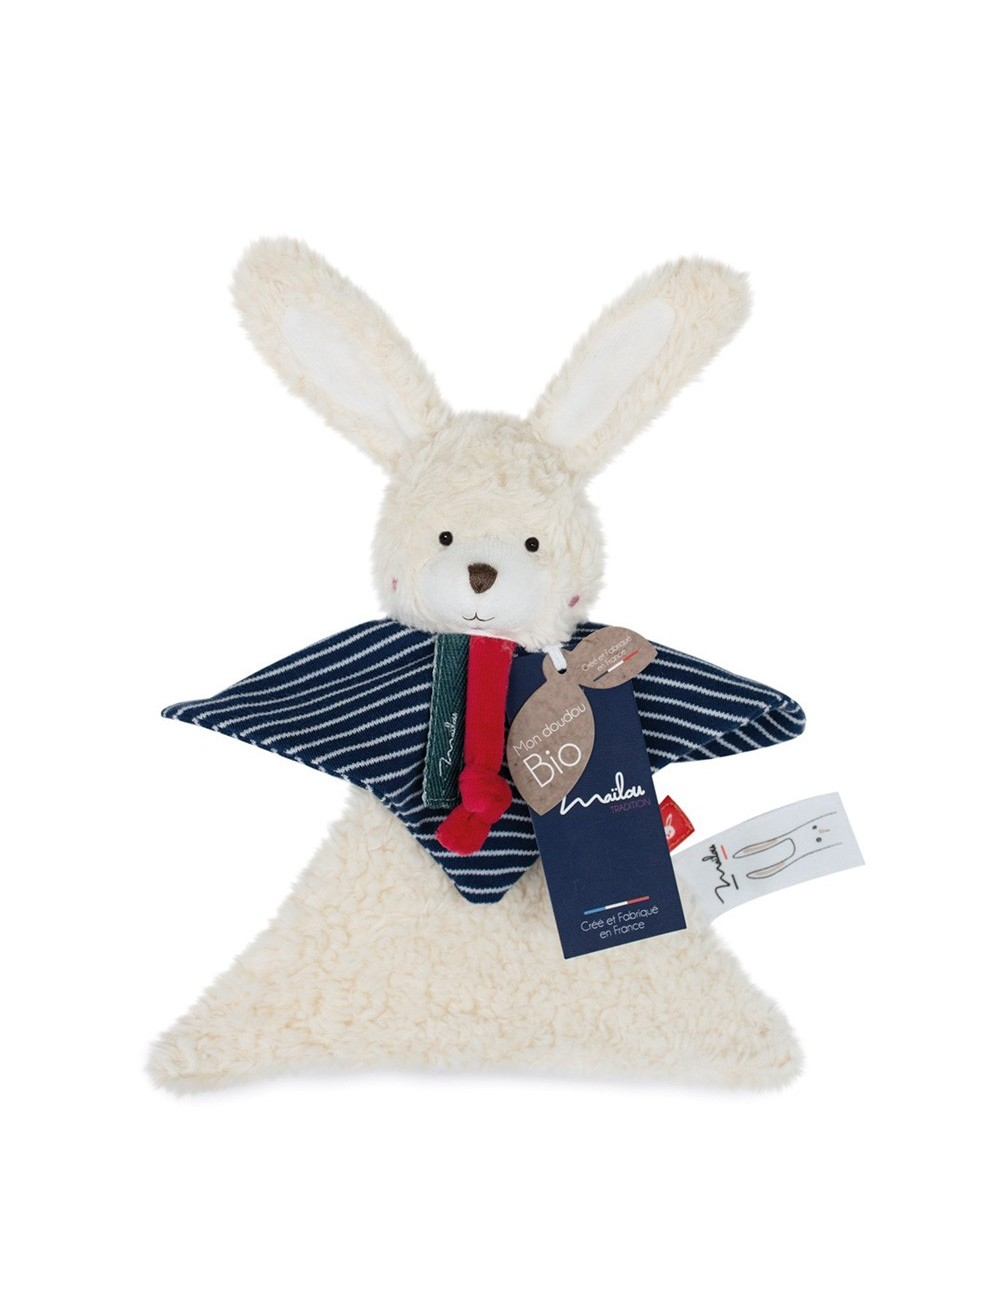 Collection Bio - LAPIN doudou 22 cm / COTON BIO